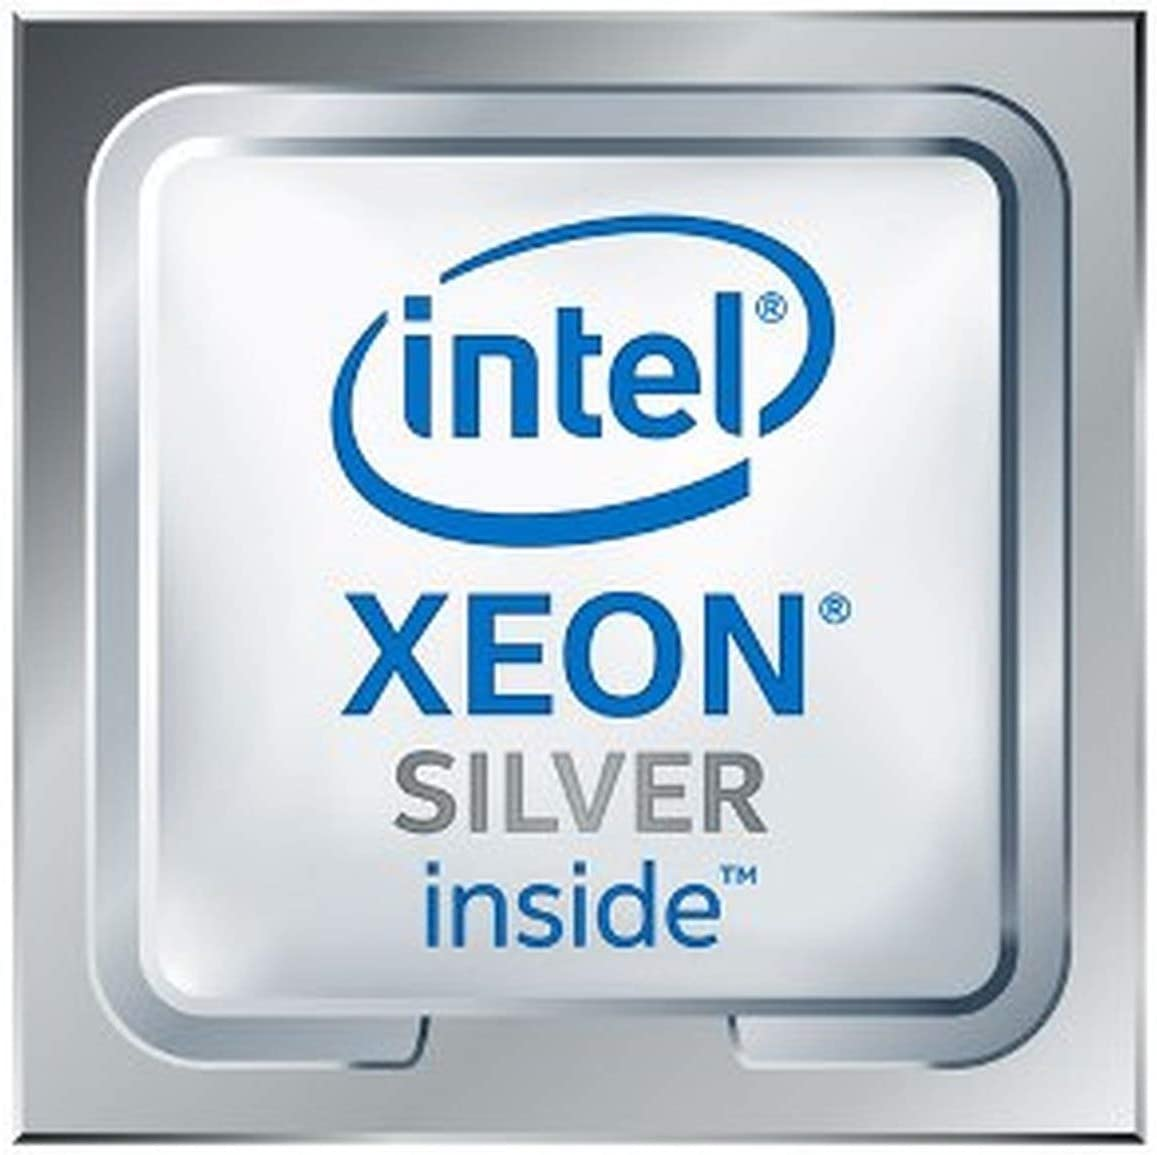 HPE DL380 Gen10 Intel Xeon-Silver 4208 (2.1GHz/8-core/85W) Processor Kit